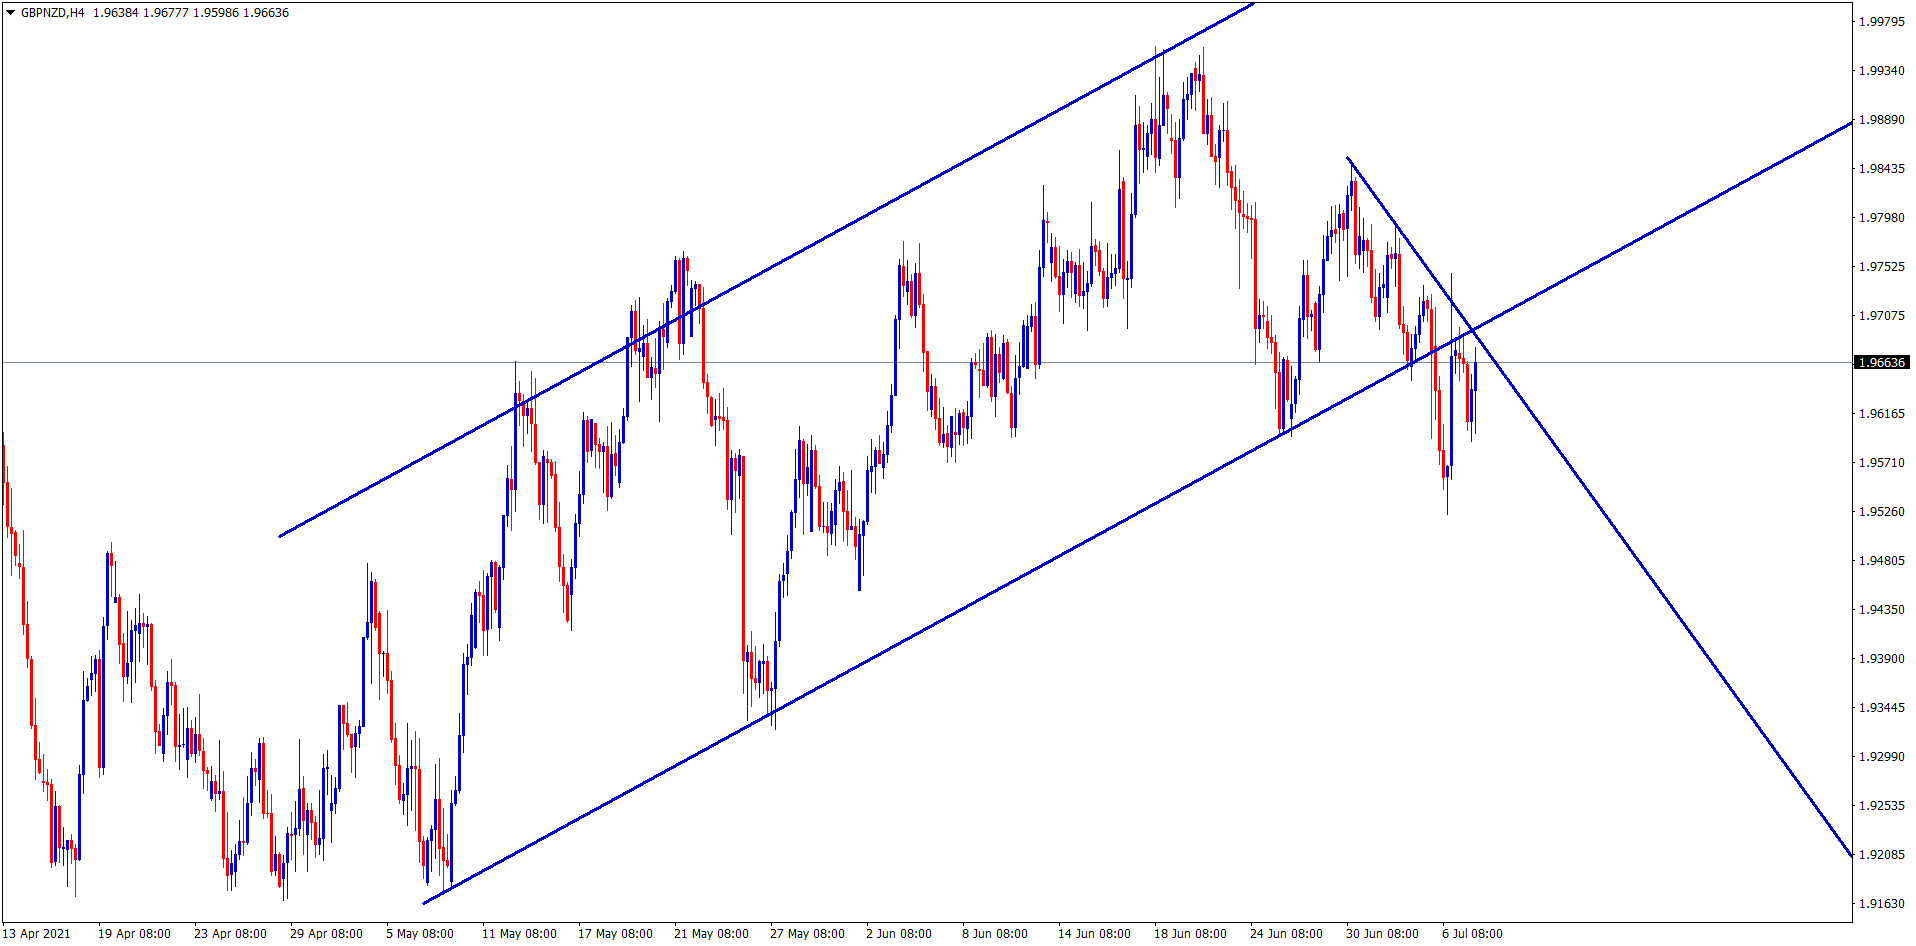 gbpnzd breakout and retesting the broken level of uptrend line